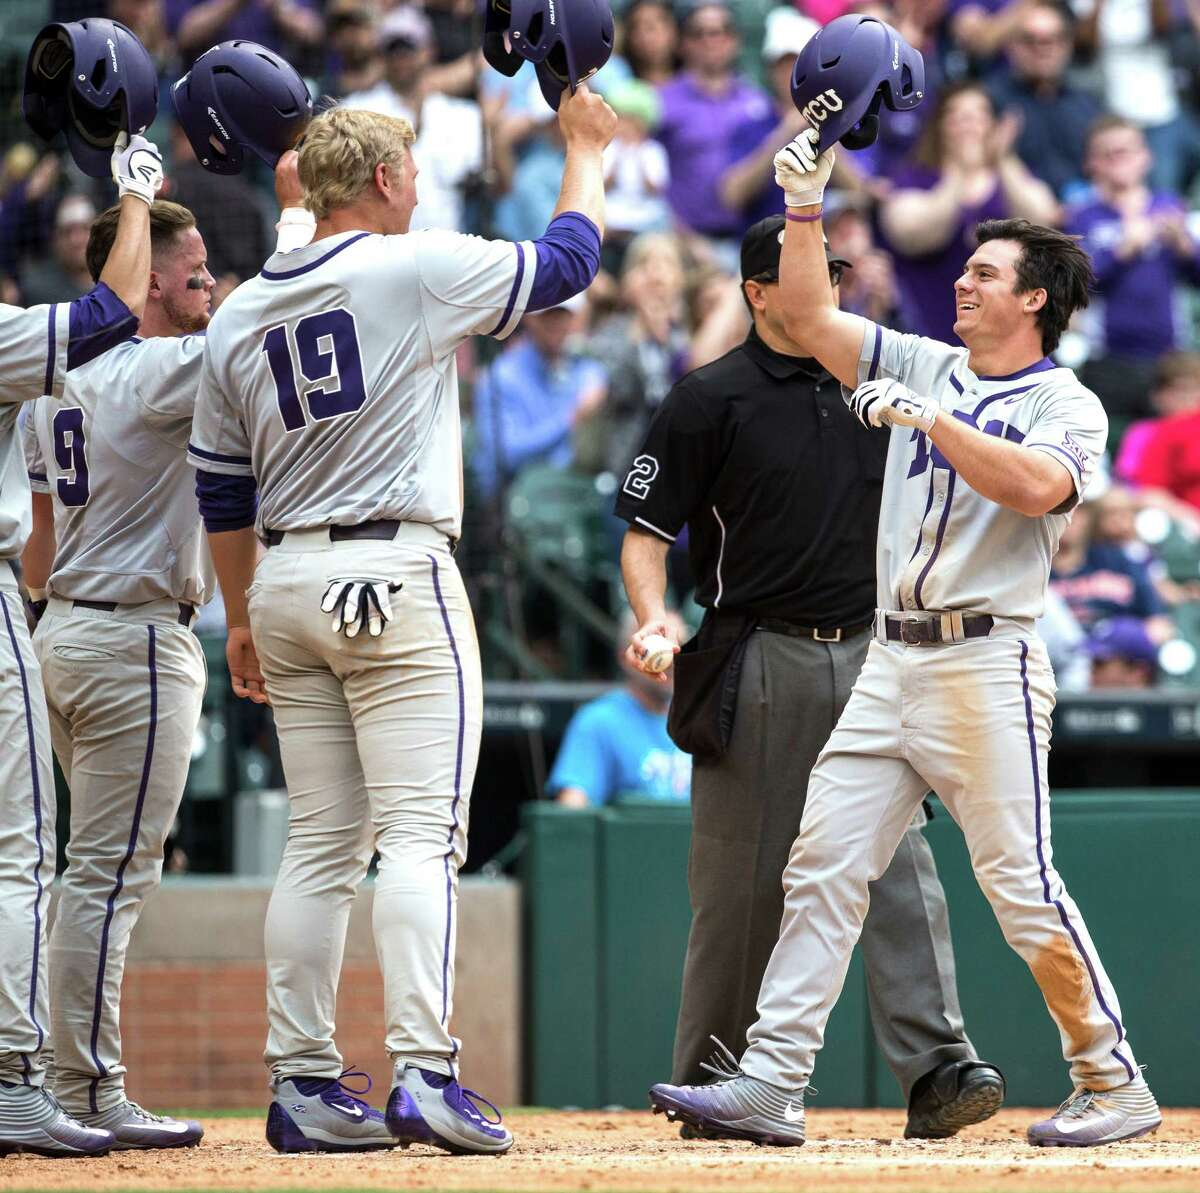 TCU outfielder Josh Watson (7) is greeted at home by TCU first baseman Luken Baker (19) after hitting a three-run home run off Houston starter Mitch Ullom during the third inning of a Houston College Classic baseball game at Minute Maid Park on Sunday, Feb. 28, 2016, in Houston.